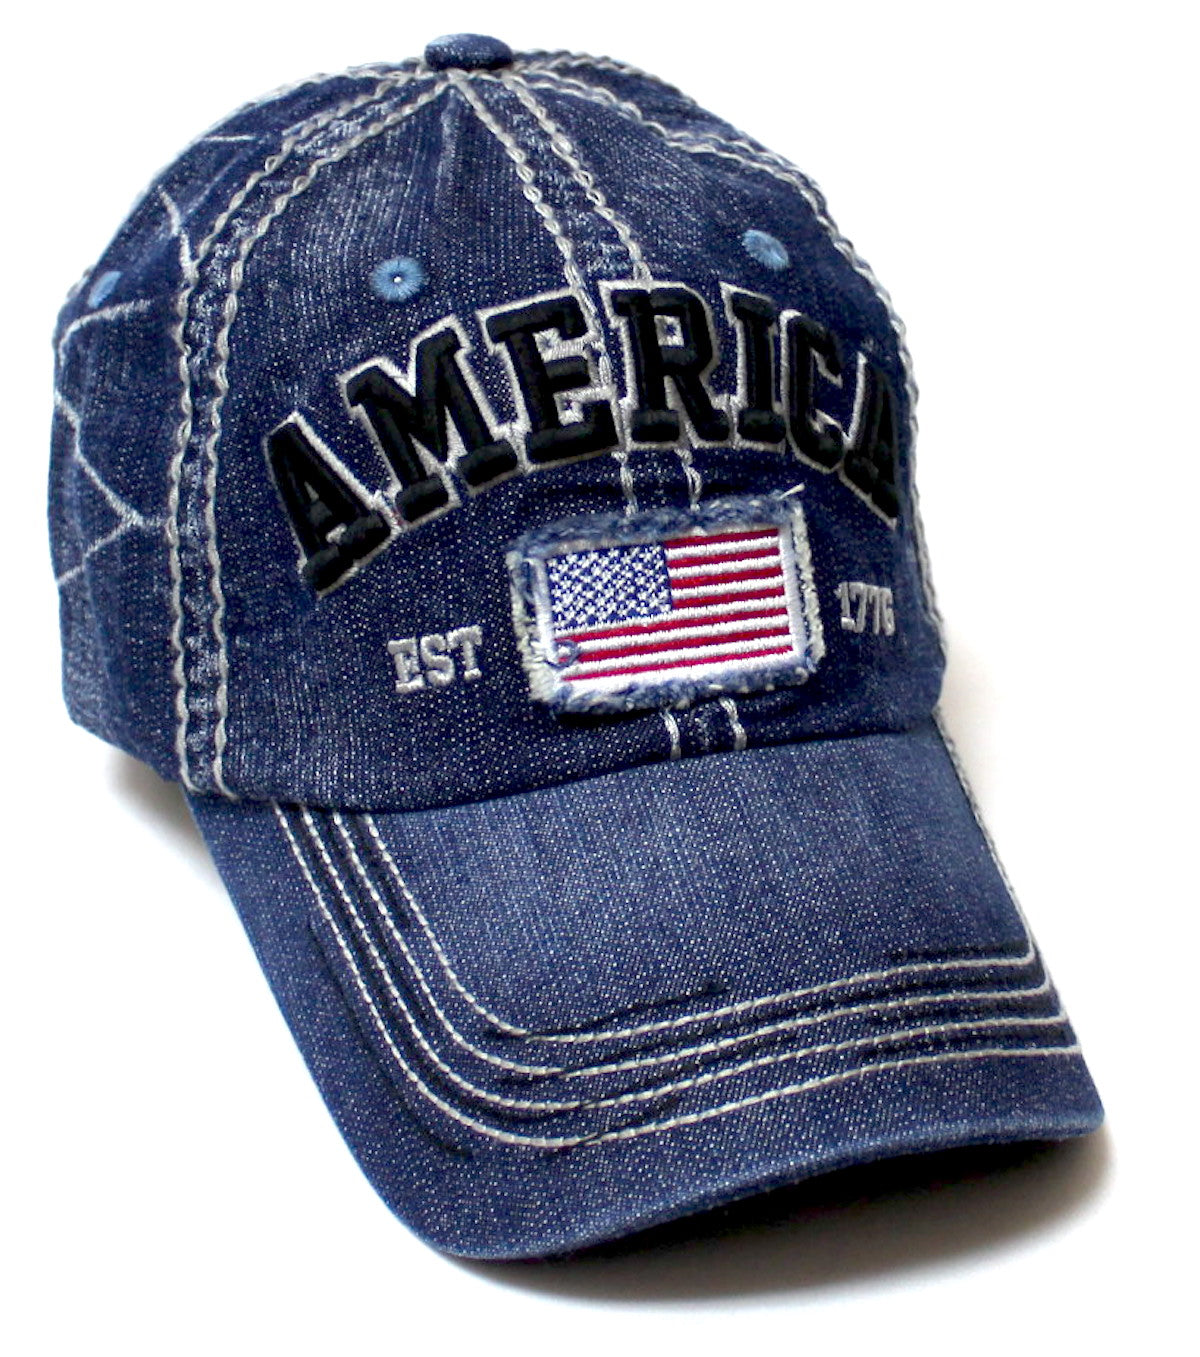 USA Vintage Baseball Cap America Est. 1776 in Denim, Turquoise & Navy Blue